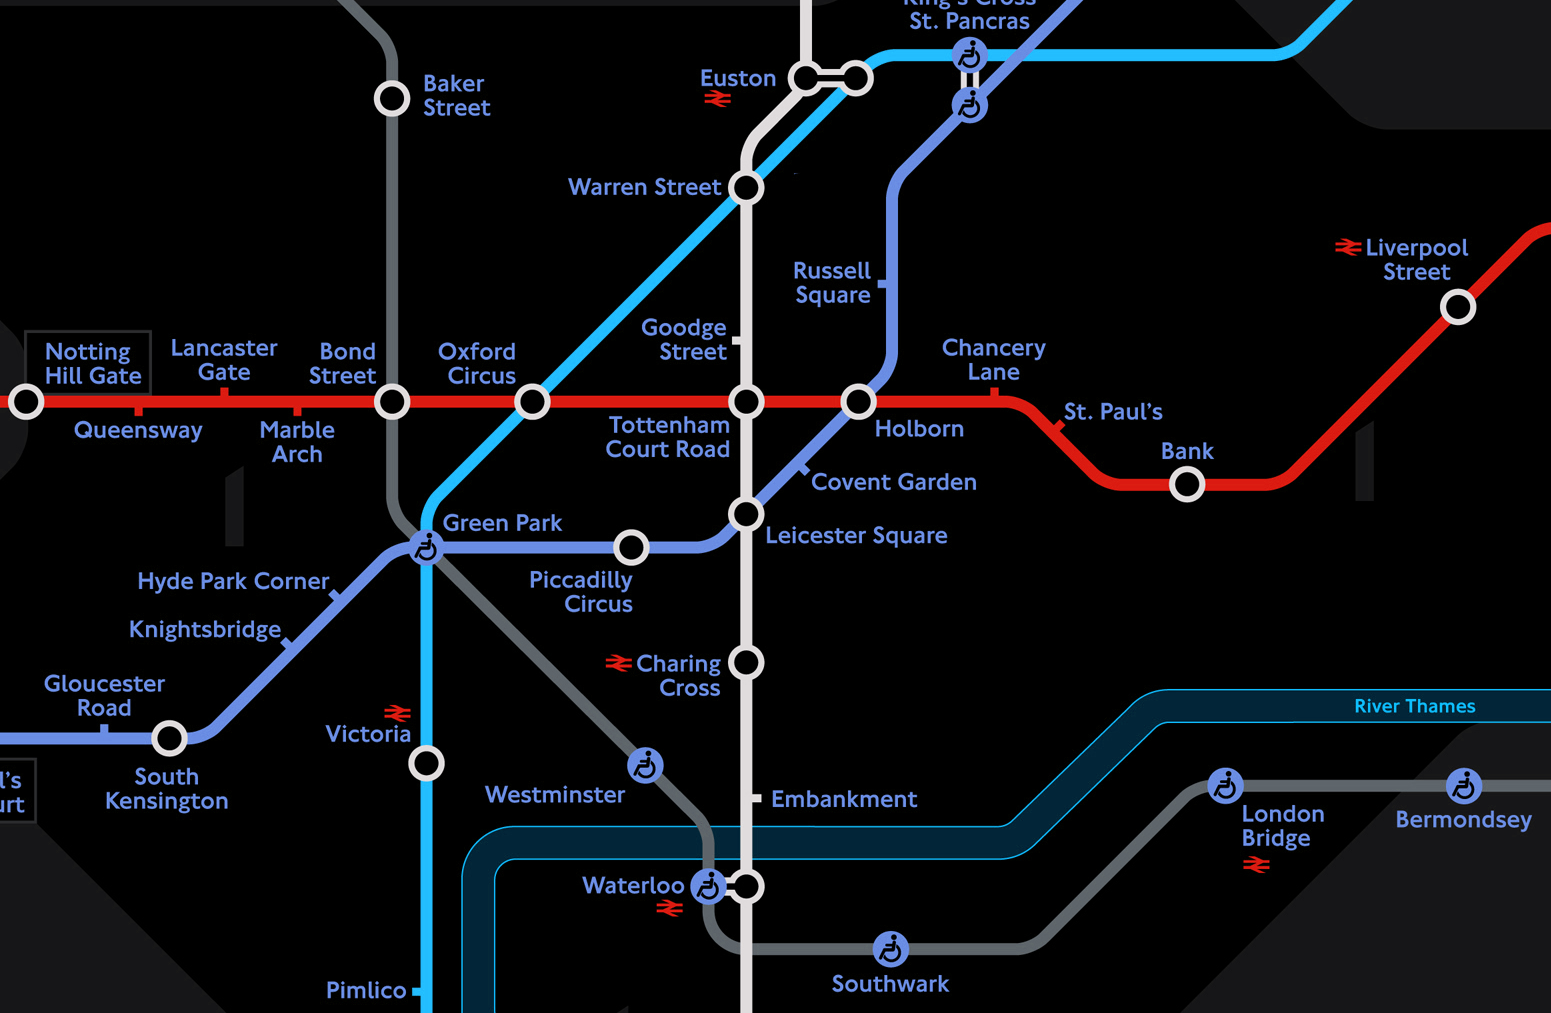 Central Night Tube